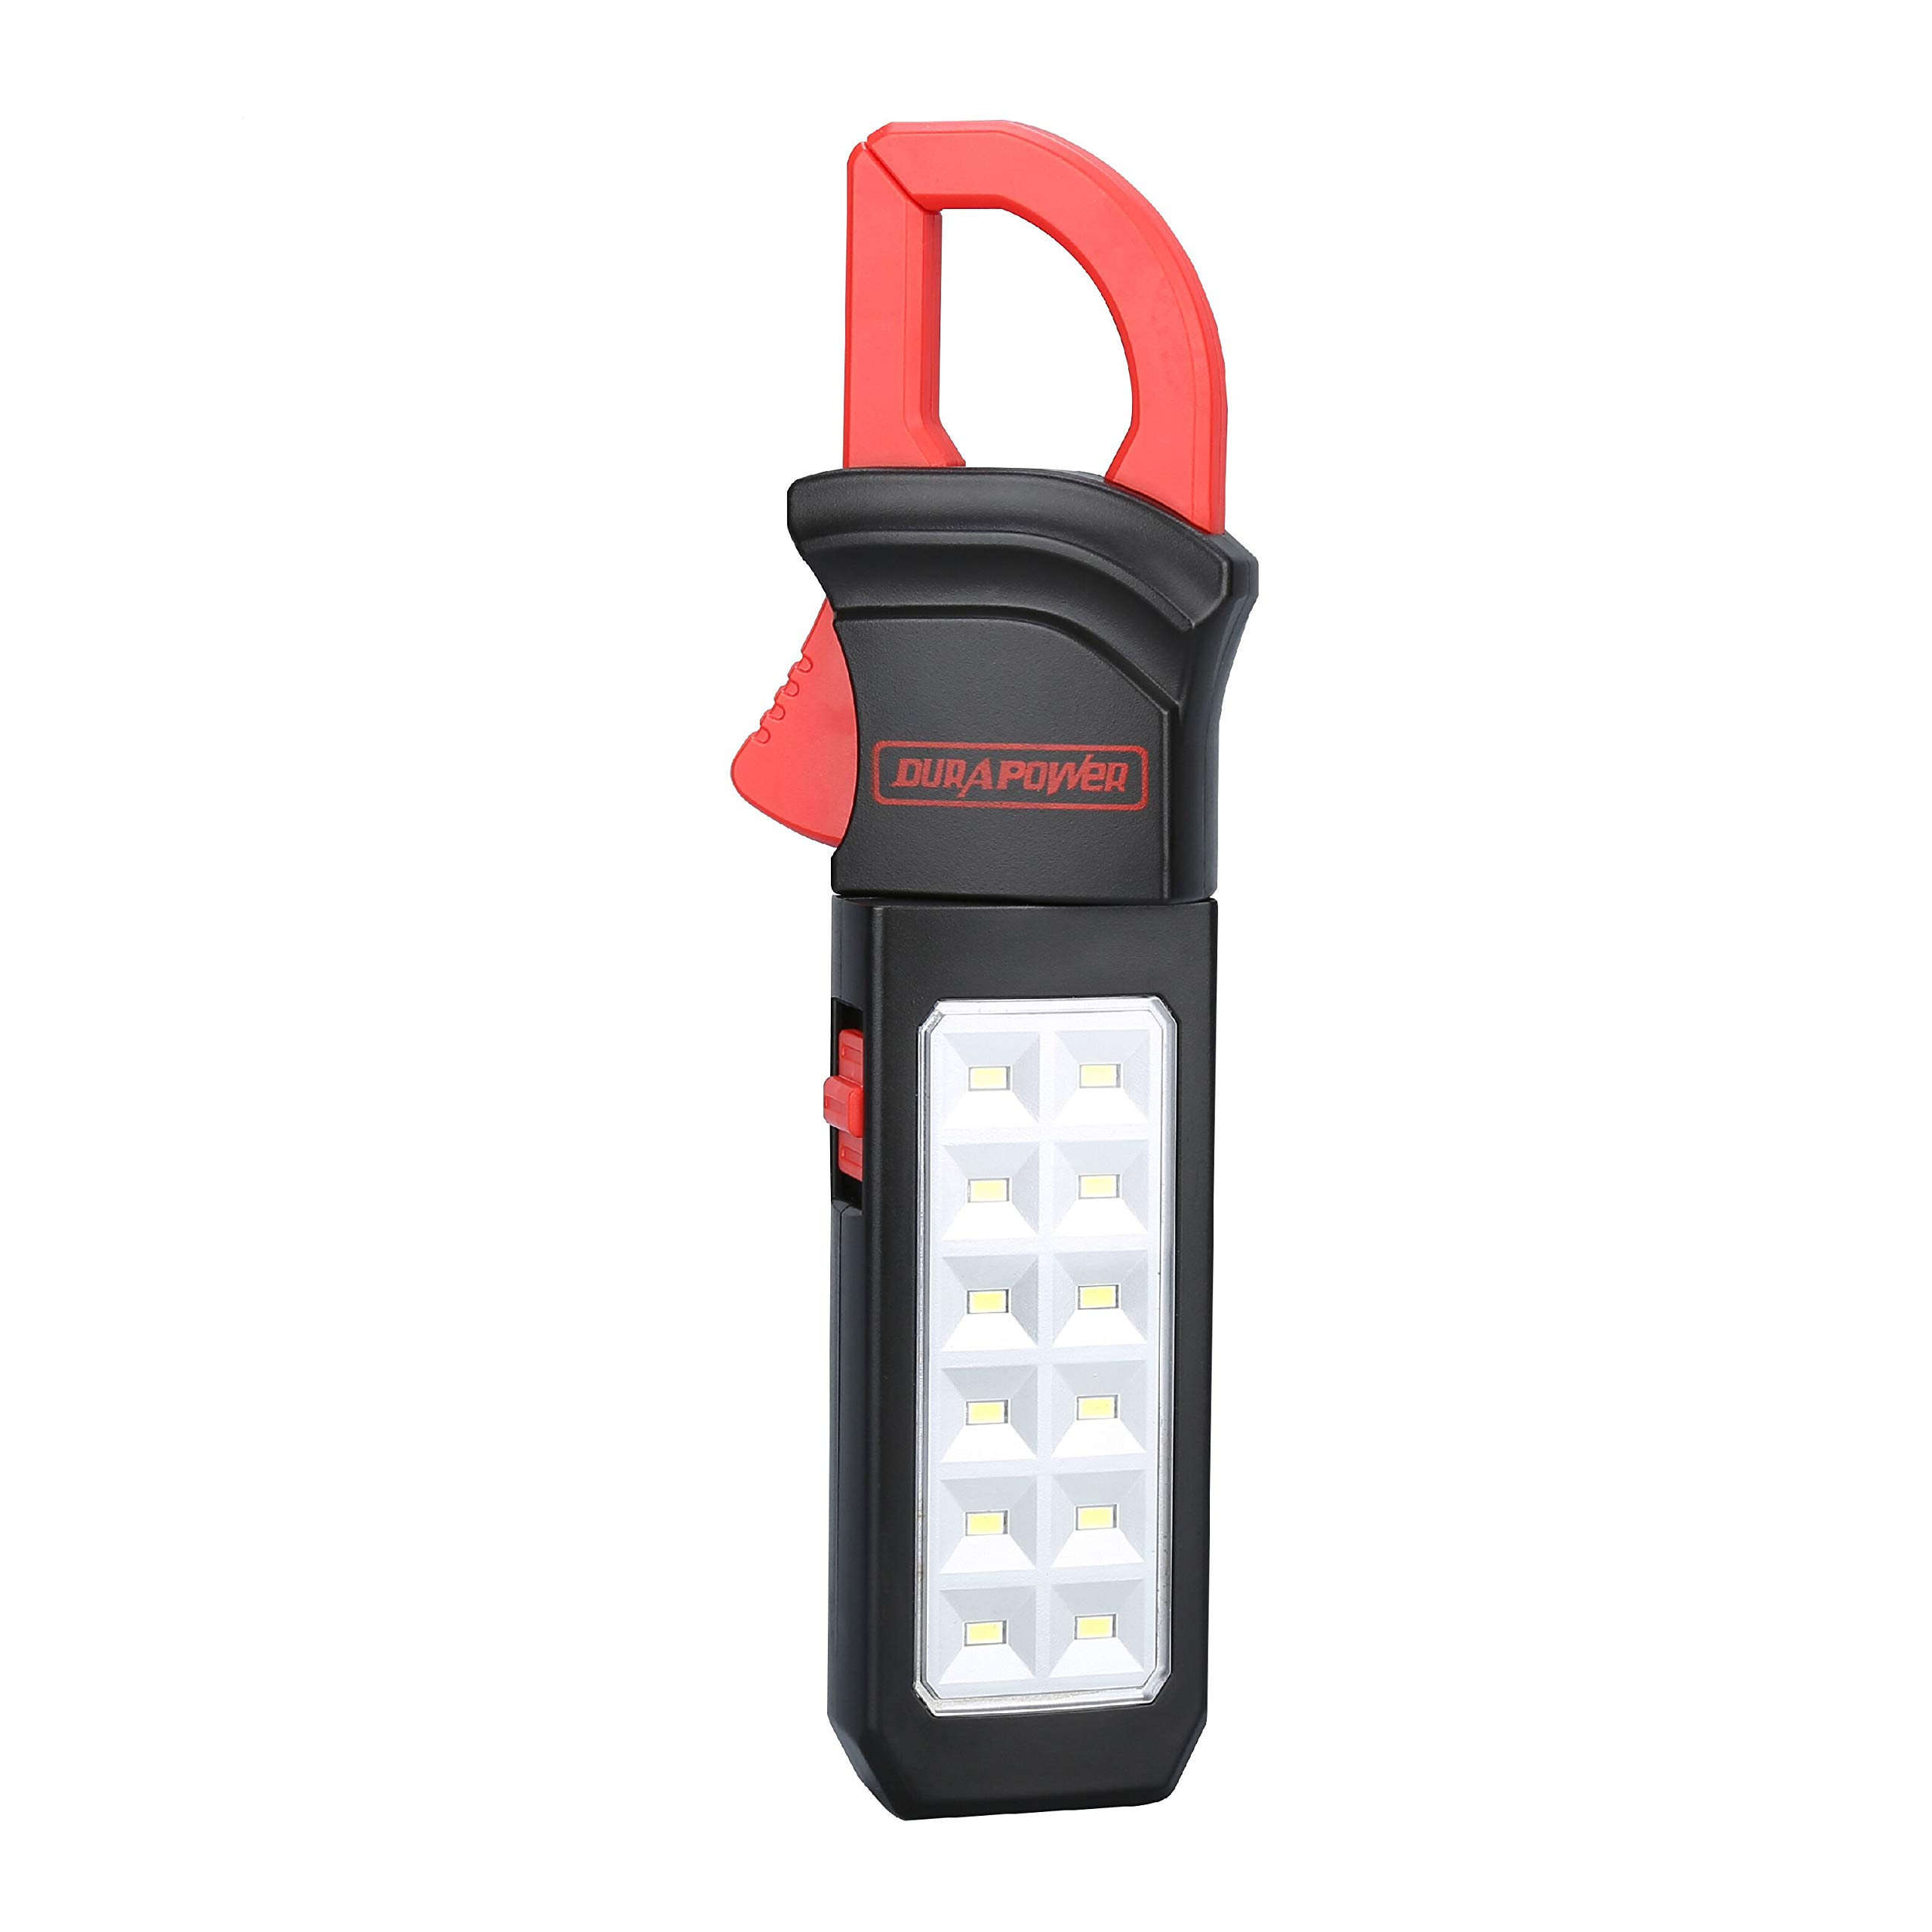 Durapower 300 Lumen LED Work Light 360 Degree Rotating Clip Include 3 AA Batteries Powerful Magnetic Back